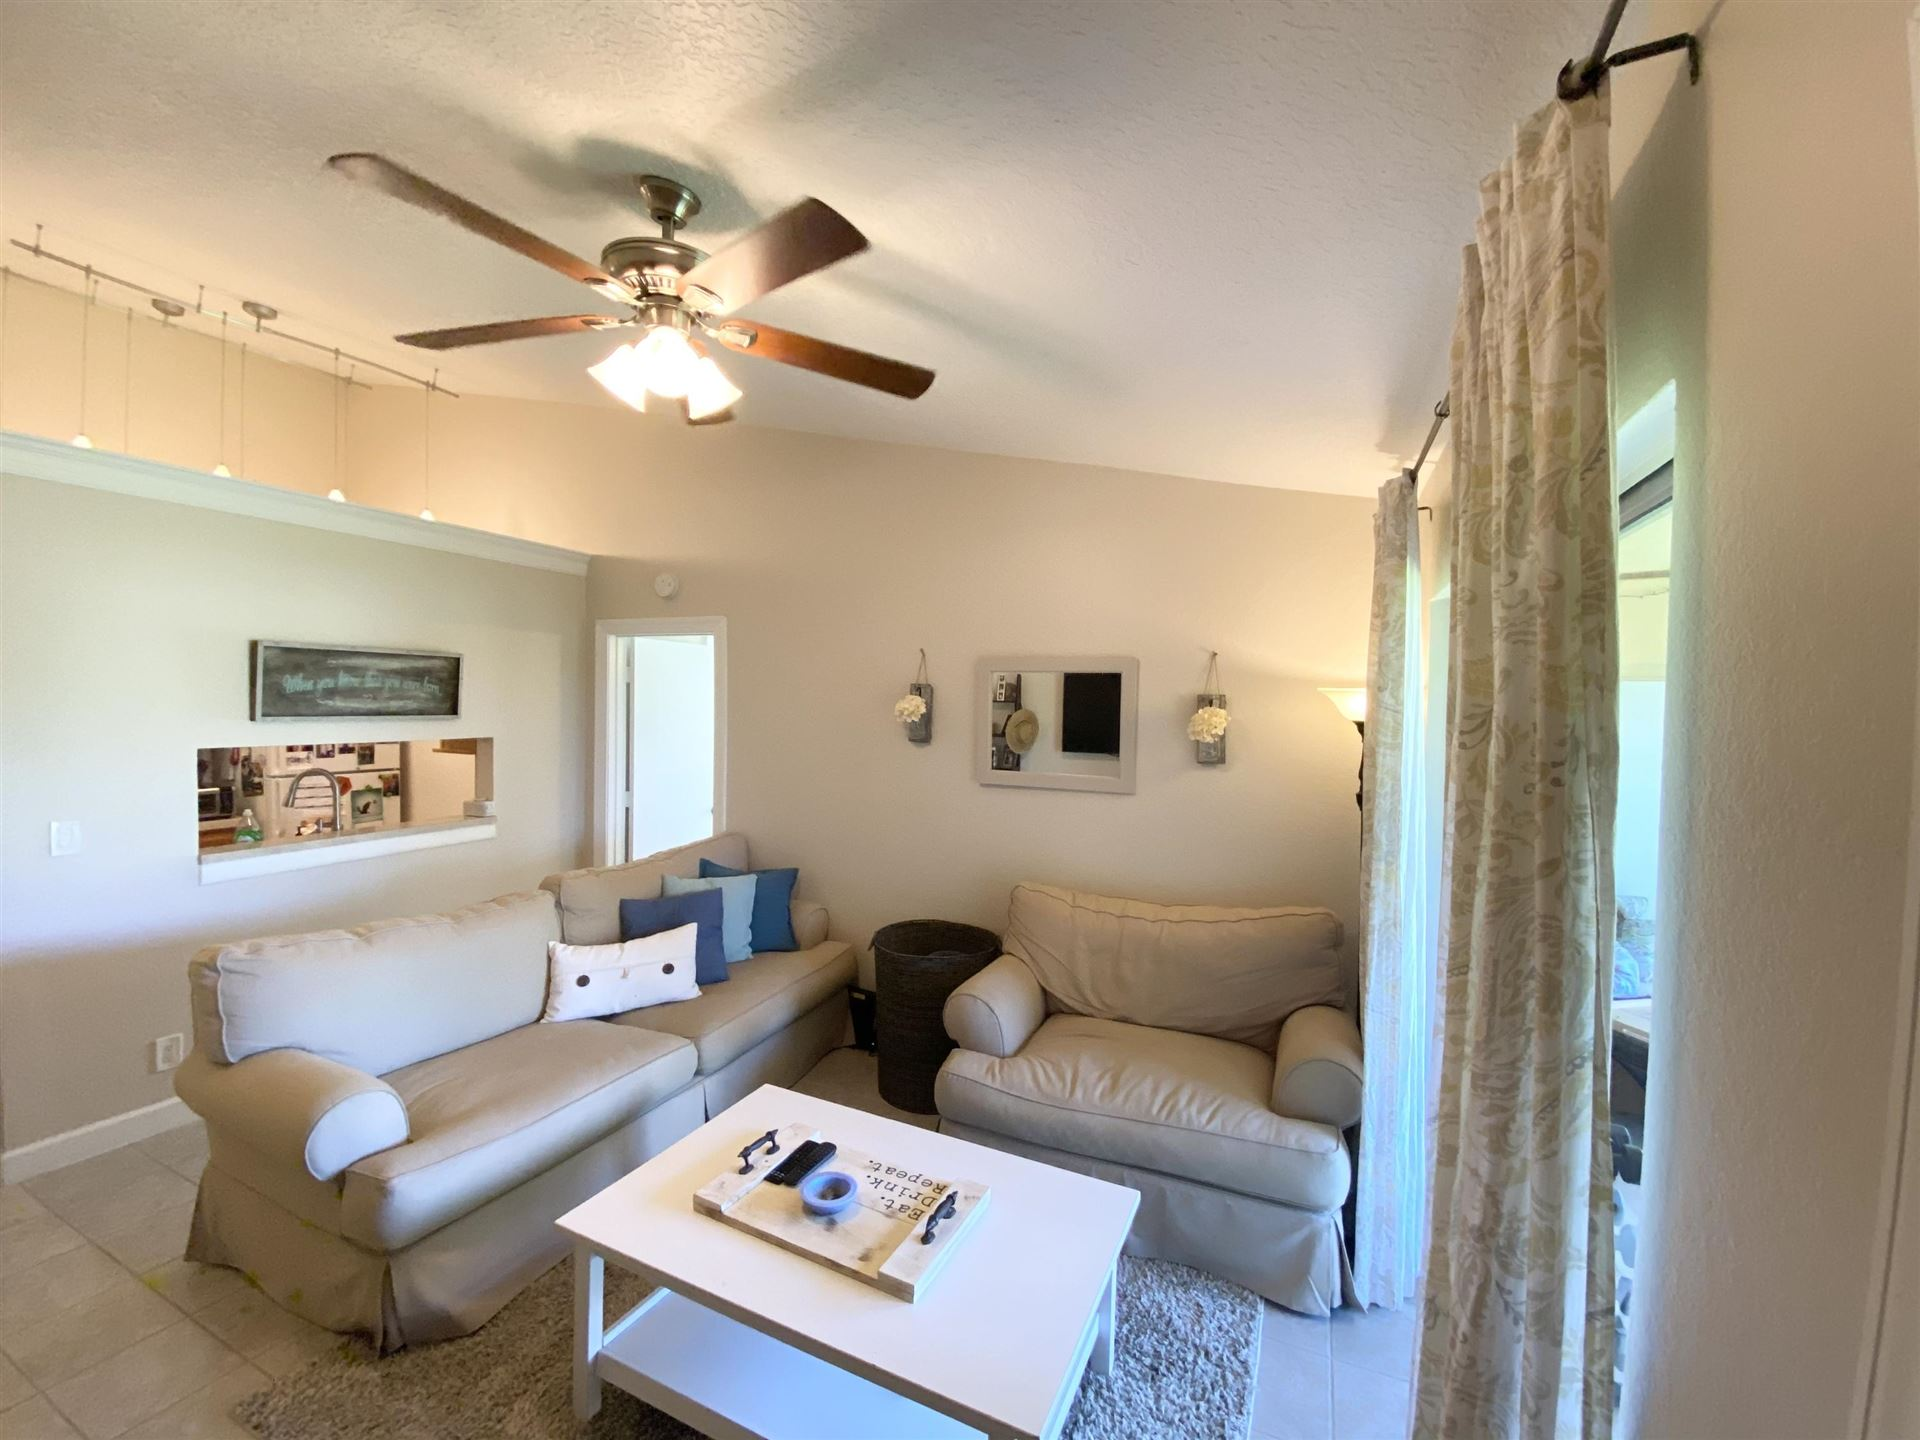 Photo of 6313 Chasewood Drive #H, Jupiter, FL 33458 (MLS # RX-10733401)